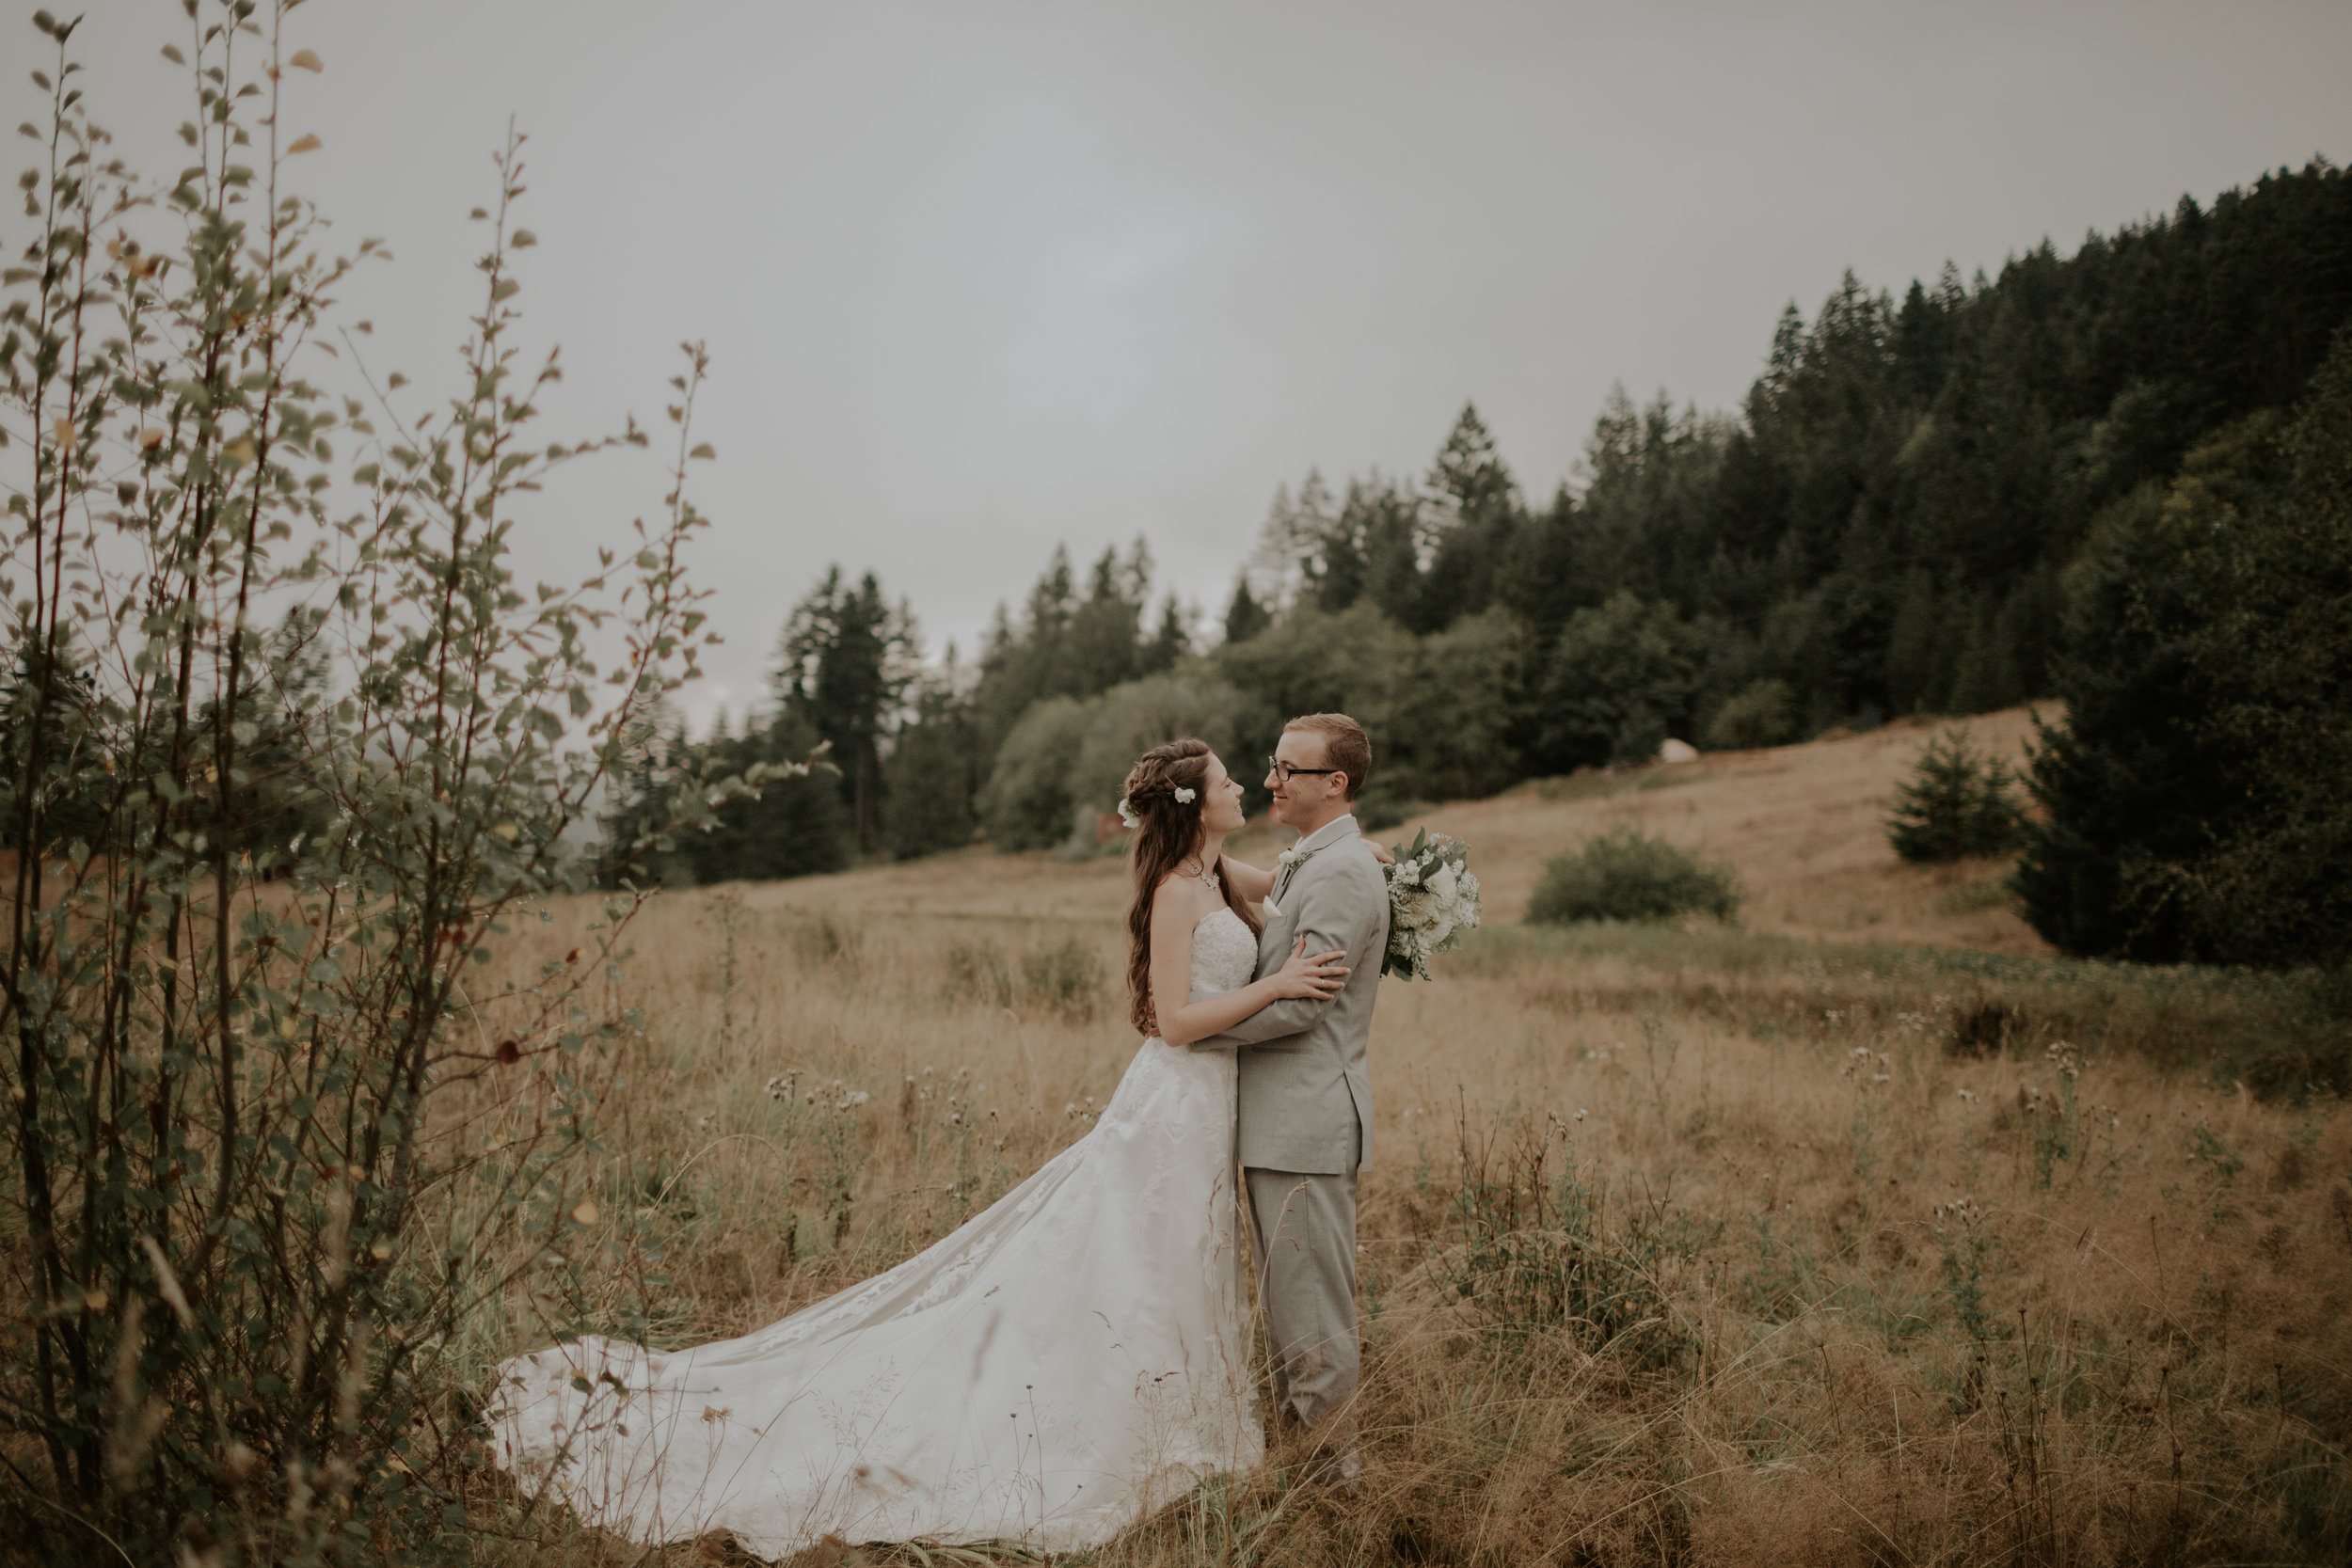 Port-Angeles-elopement-wedding-pnw-olympic-peninsula-photographer-portrait-kayladawnphoto-kayla-dawn-photography-olympic-national-park-182.jpg